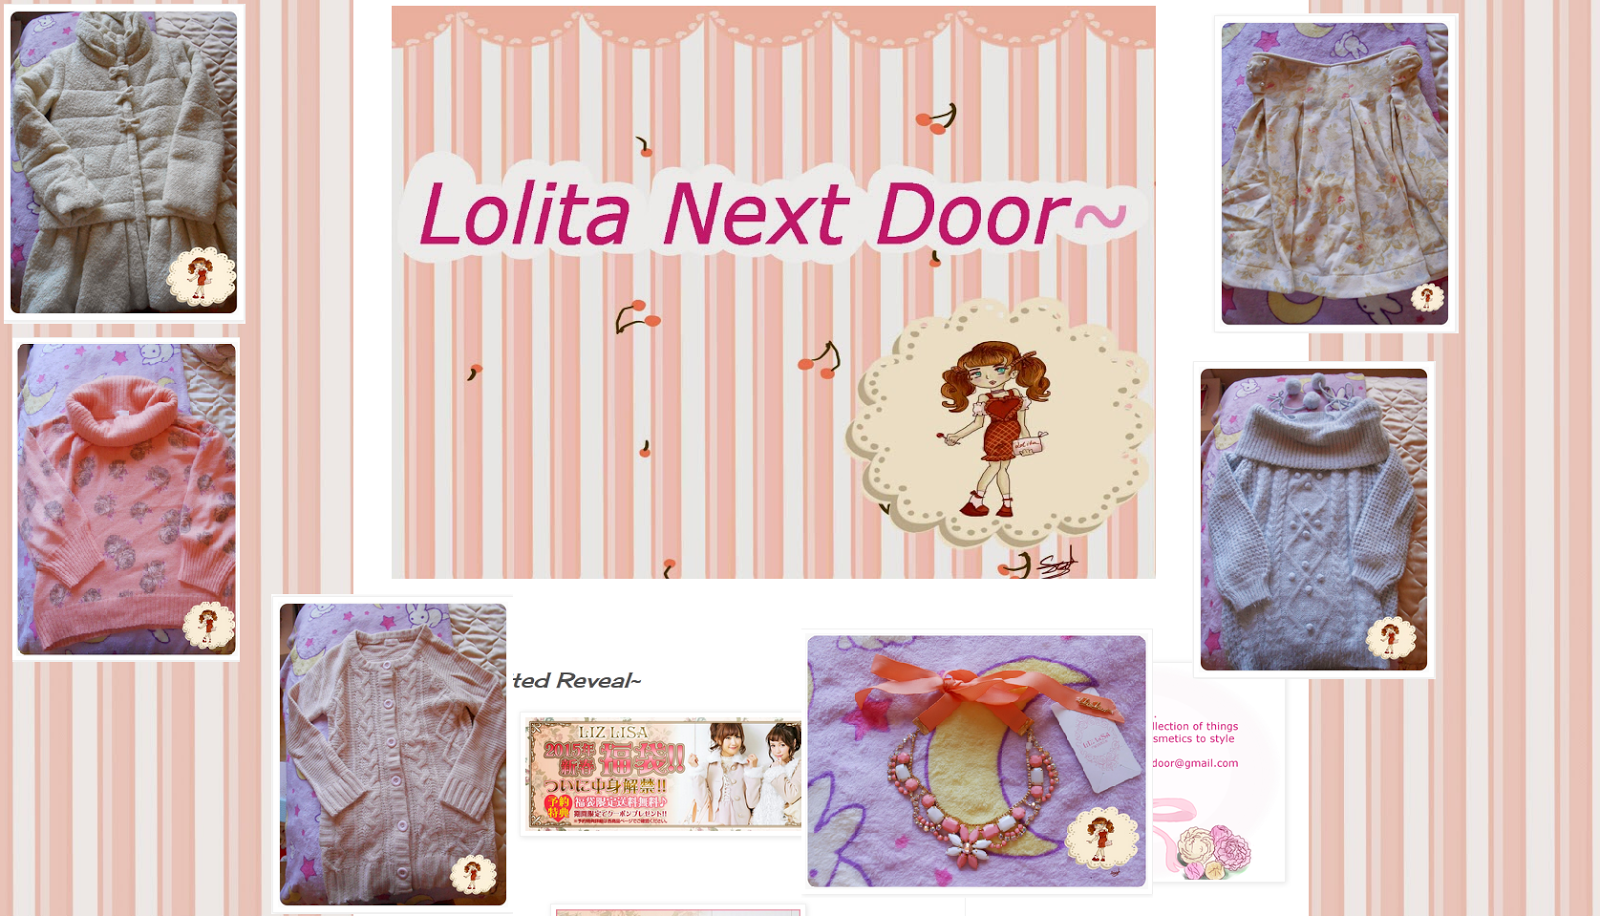 http://lolita-next-door.blogspot.com/2015/01/web-limited-reveal.html